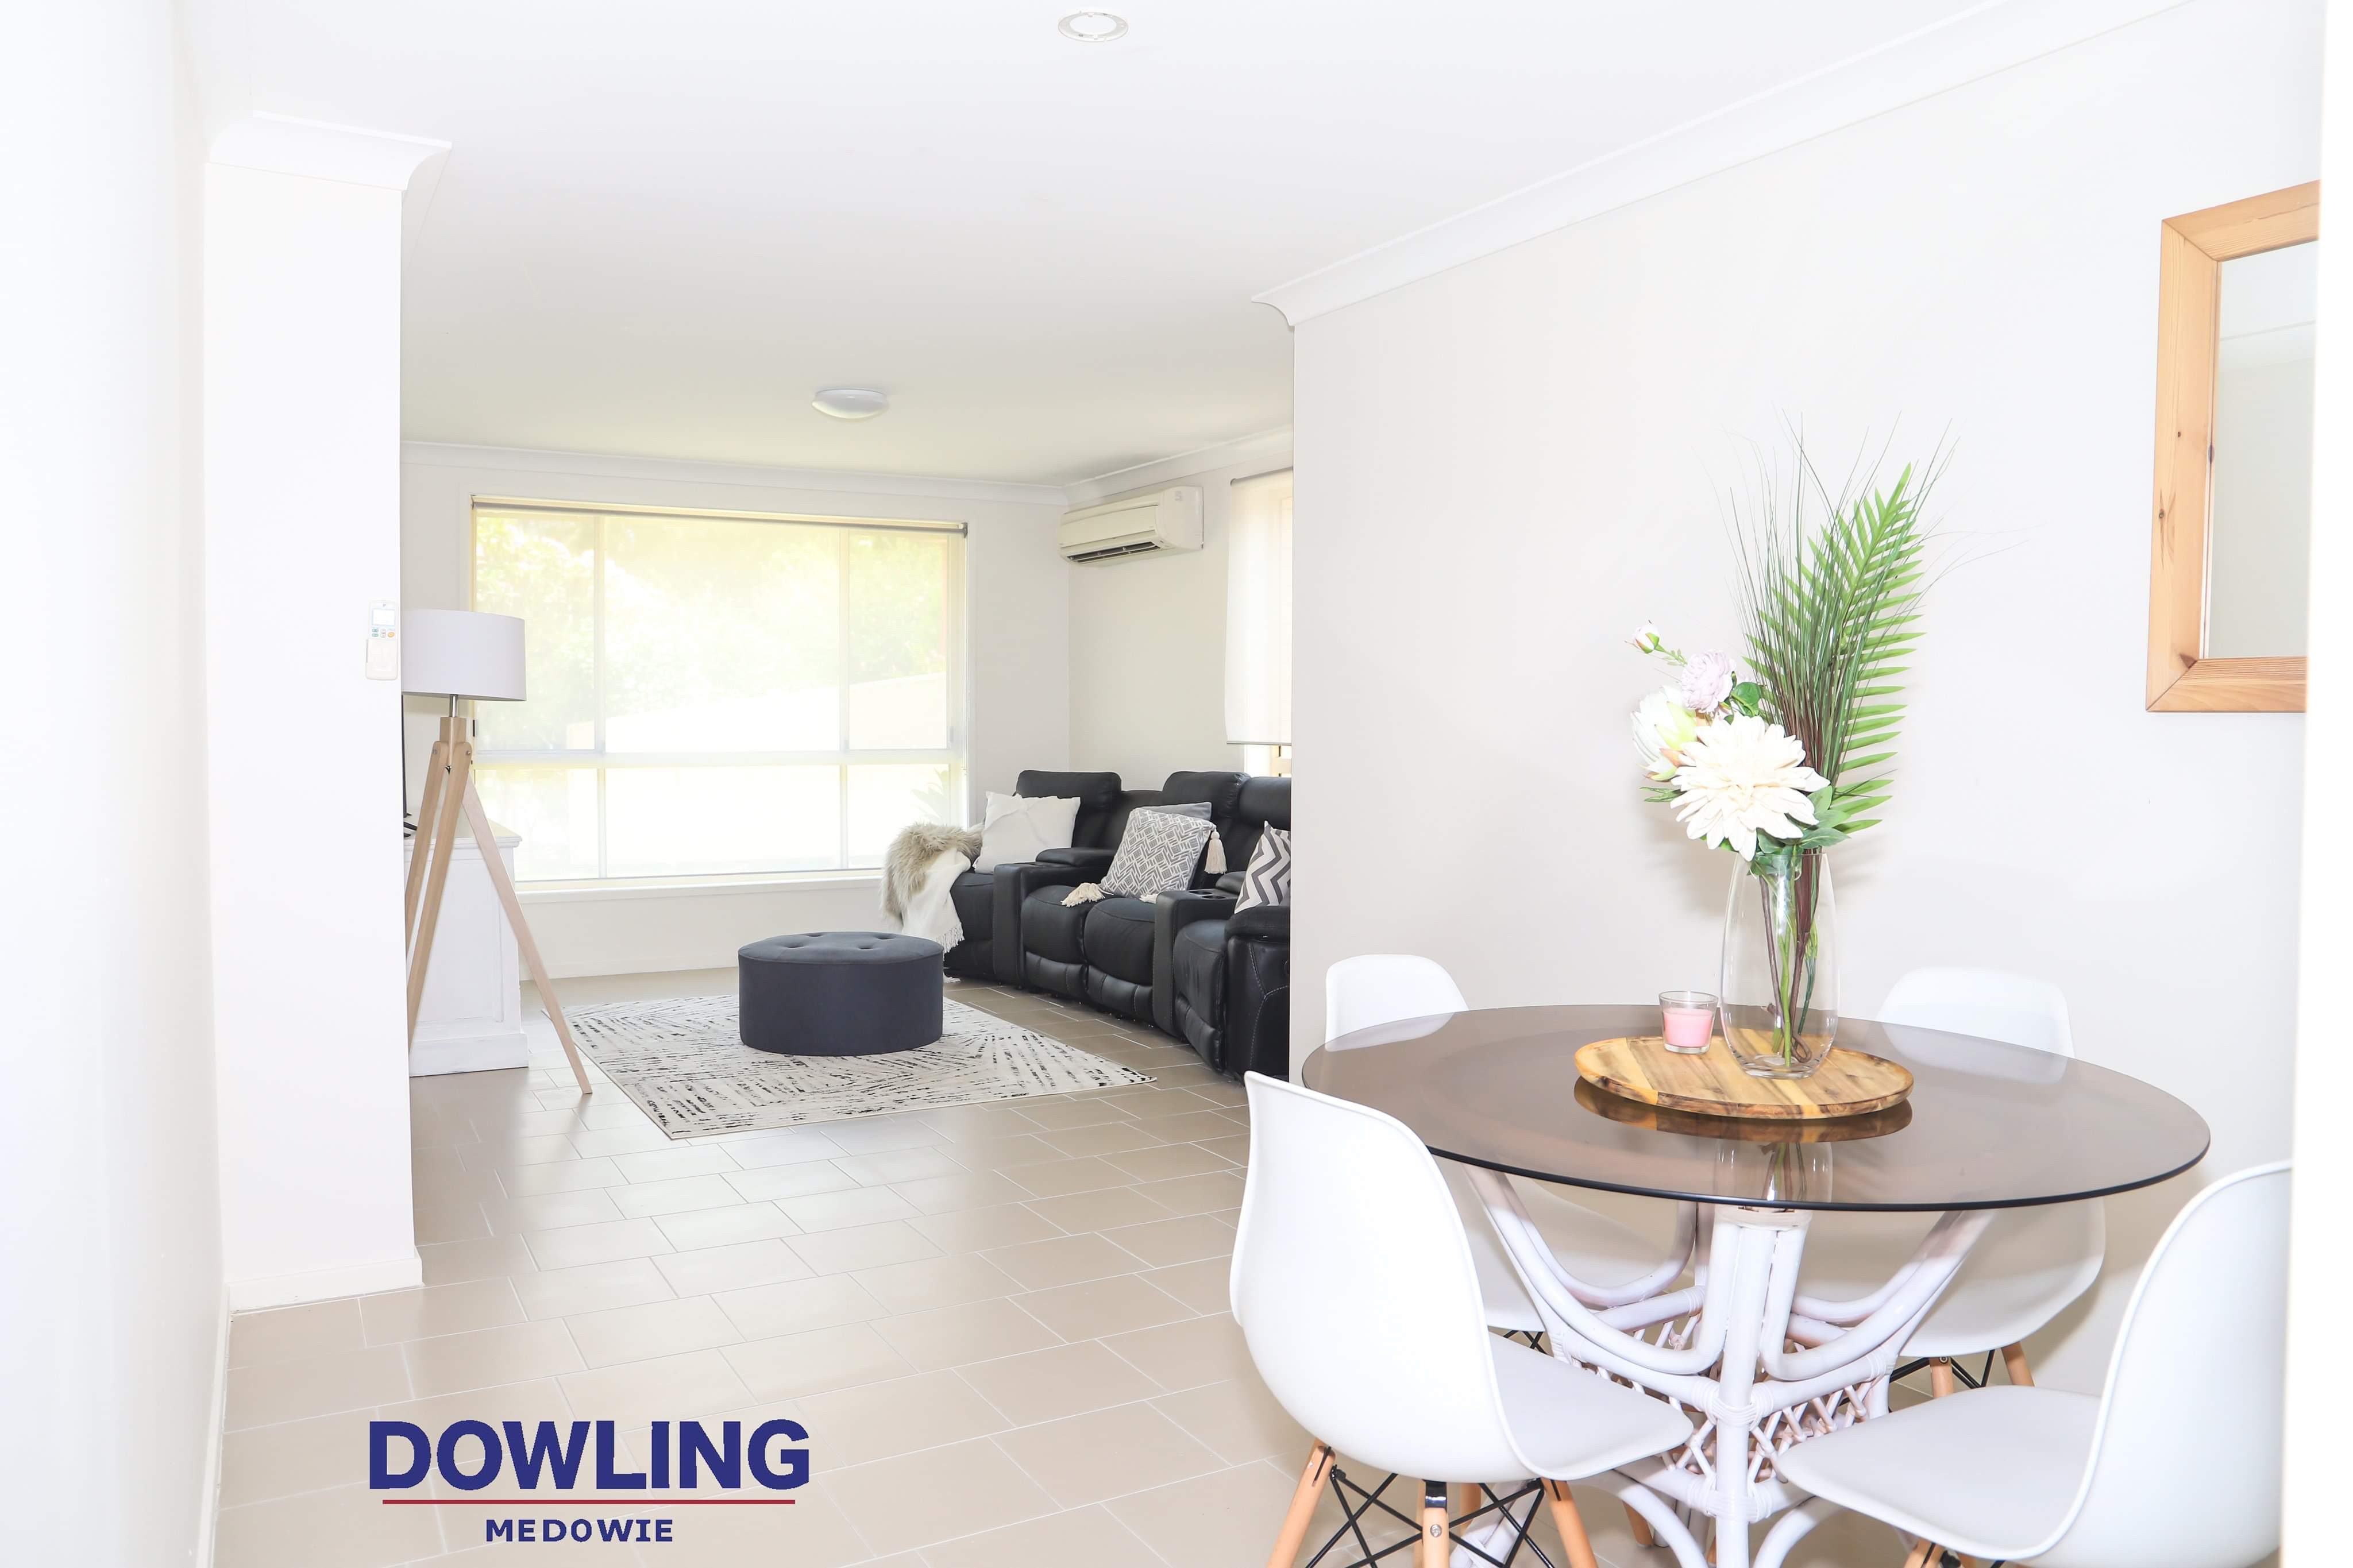 27A COOLABAH ROAD MEDOWIE